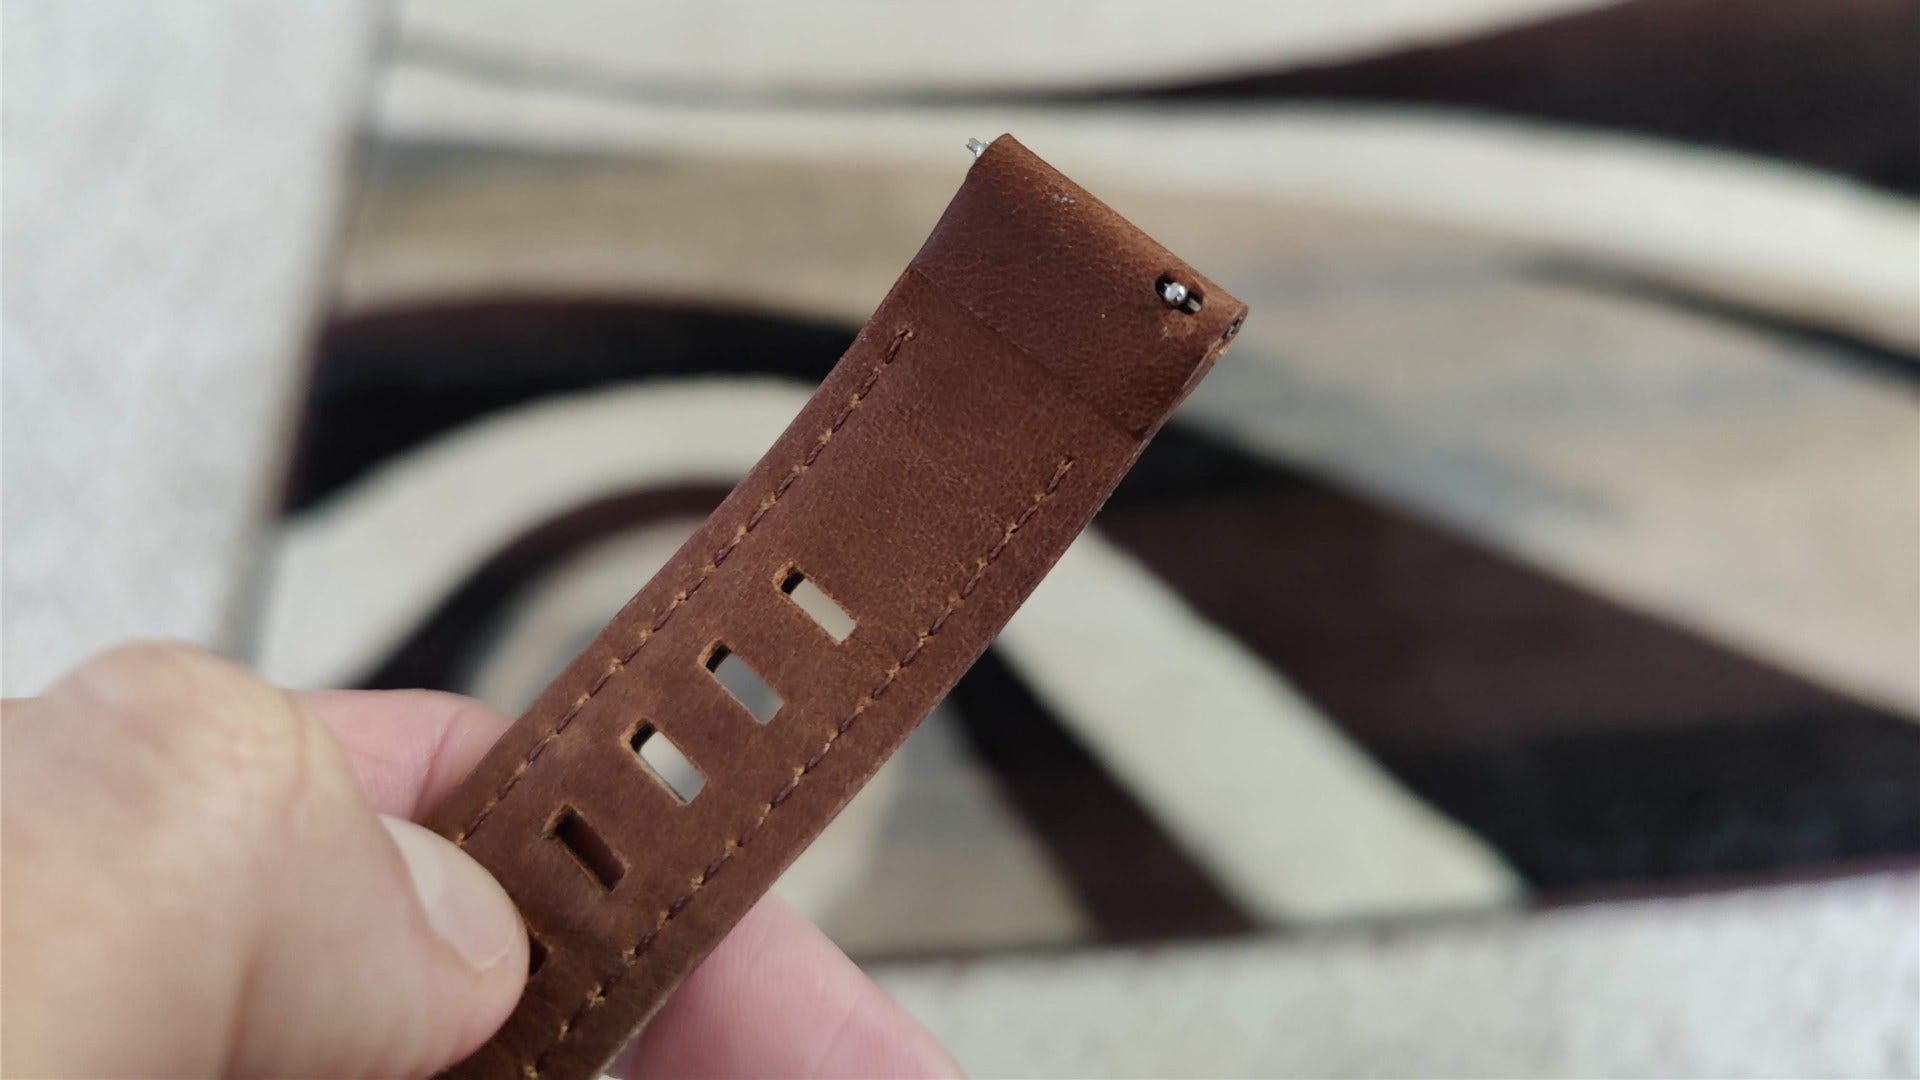 A closeup of the quick switching pins on the leather UAG band